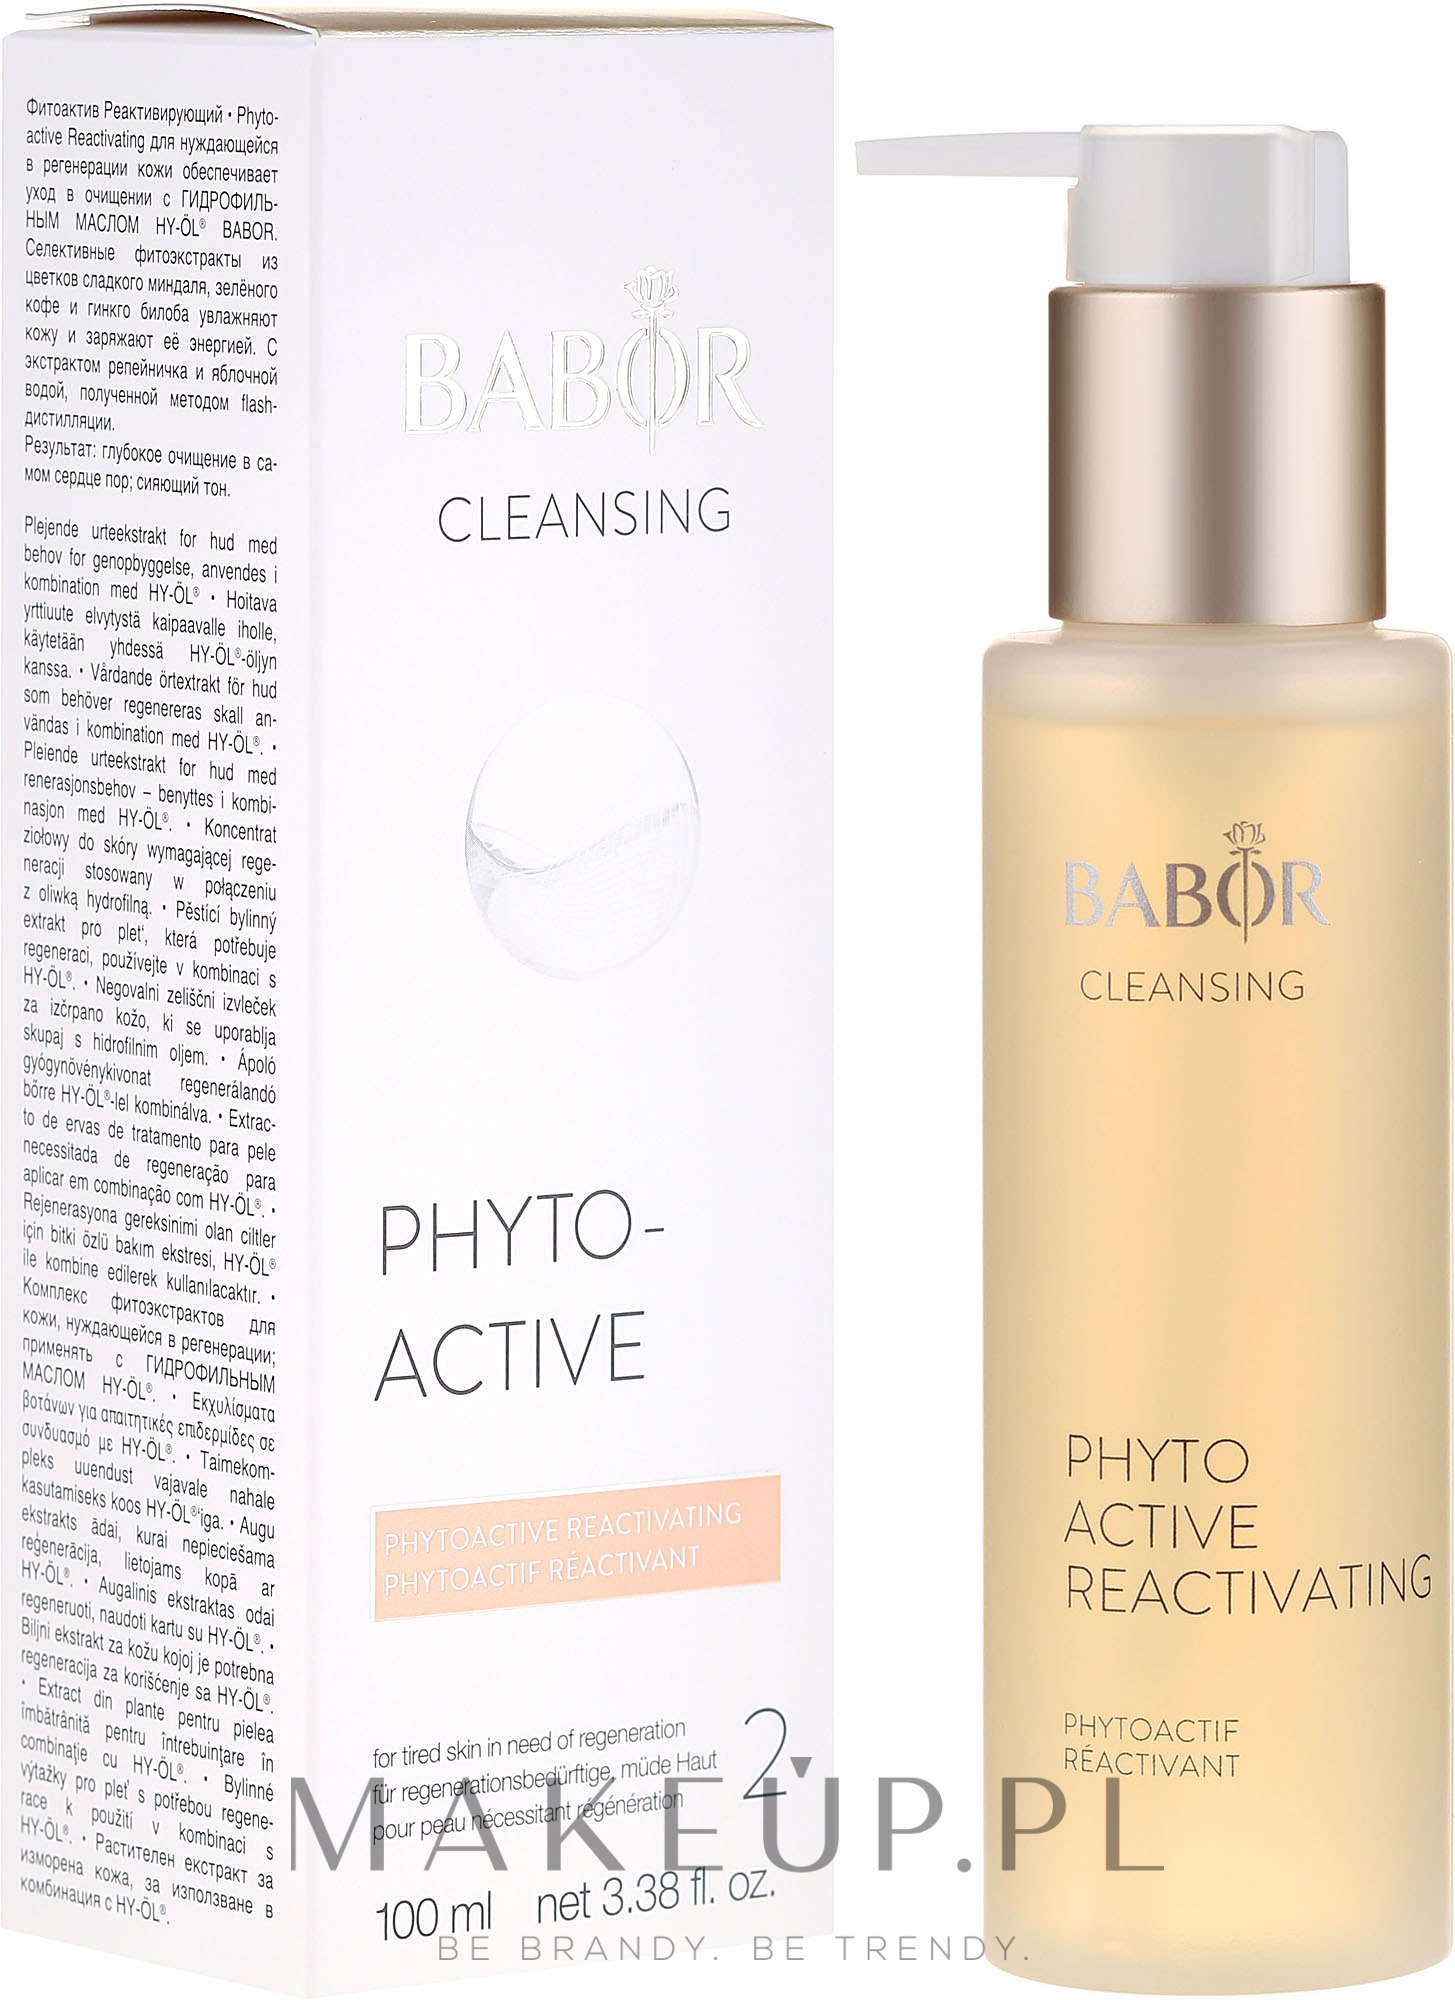 Fitoaktiv Reaktywujący - Babor Cleansing Phytoactive Reactivating — фото 100 ml